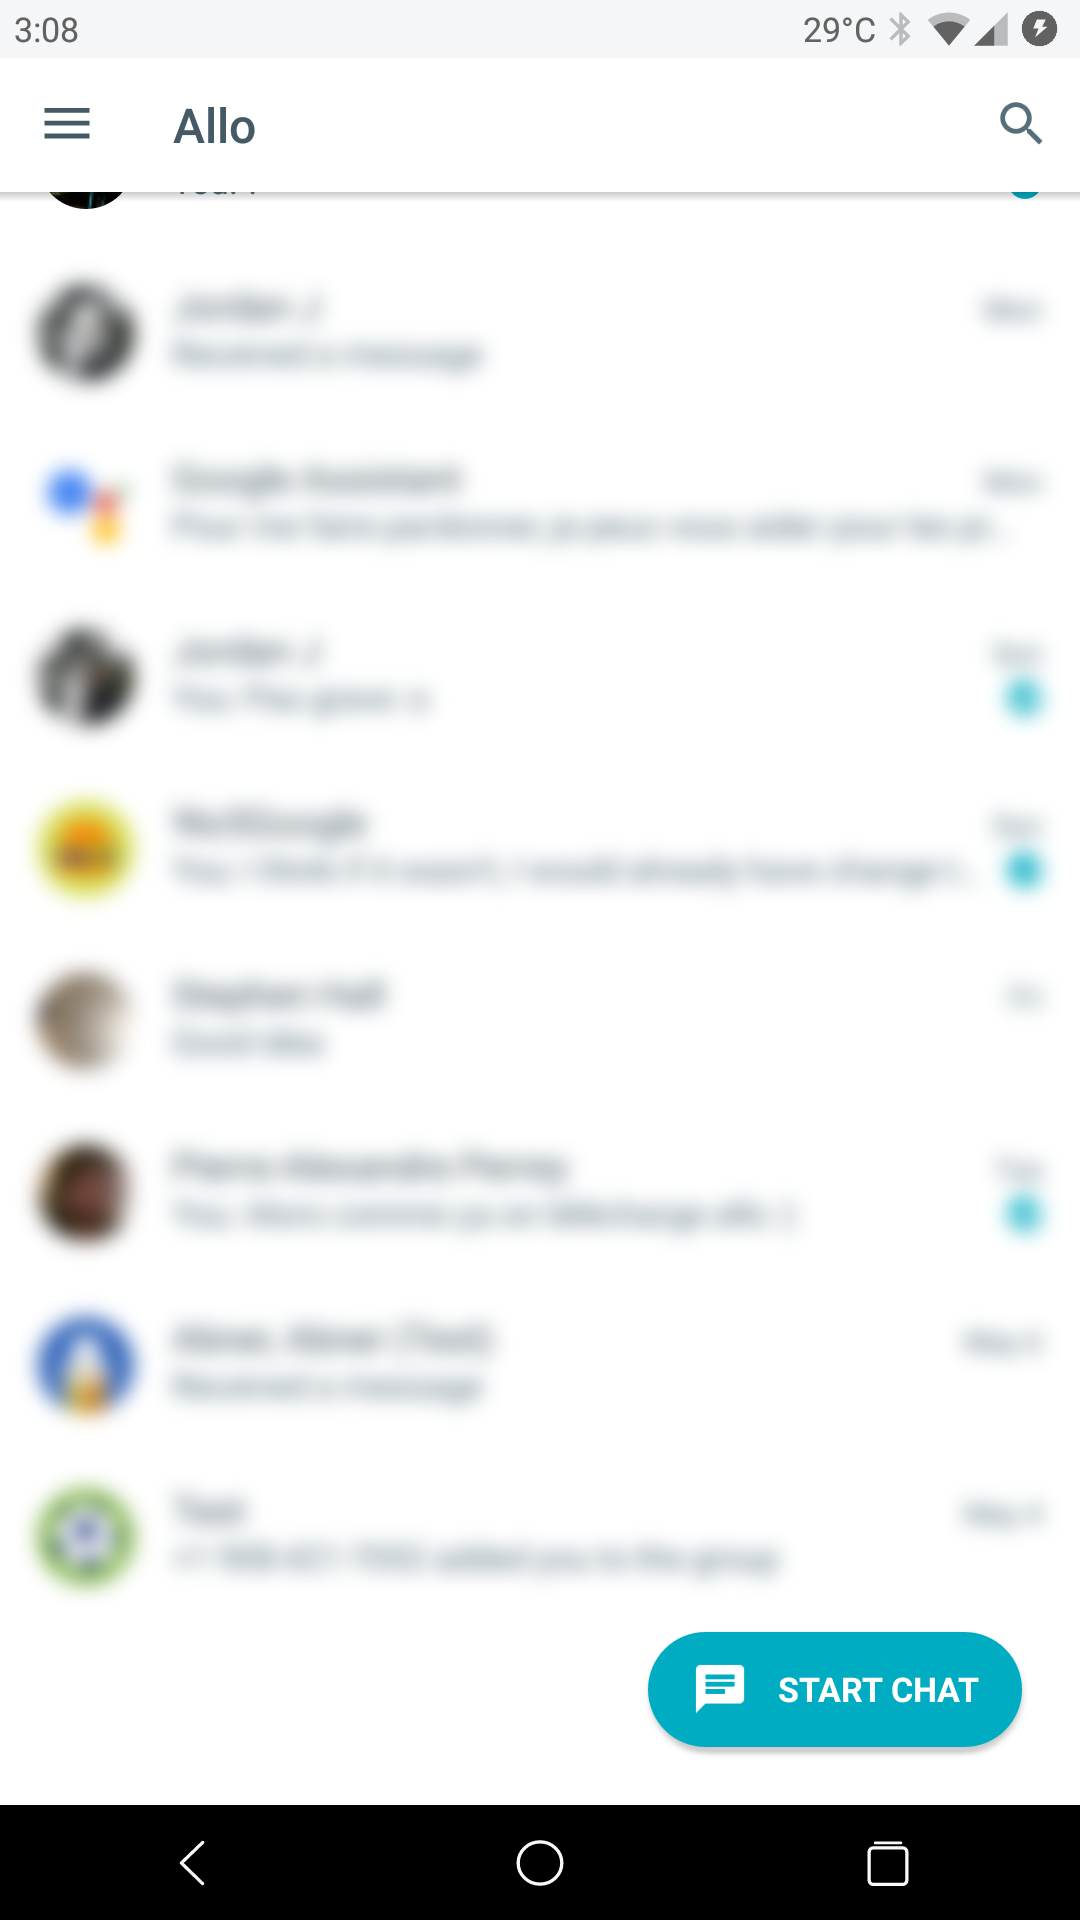 Google is testing 2 new 'New chat' buttons in Allo 11